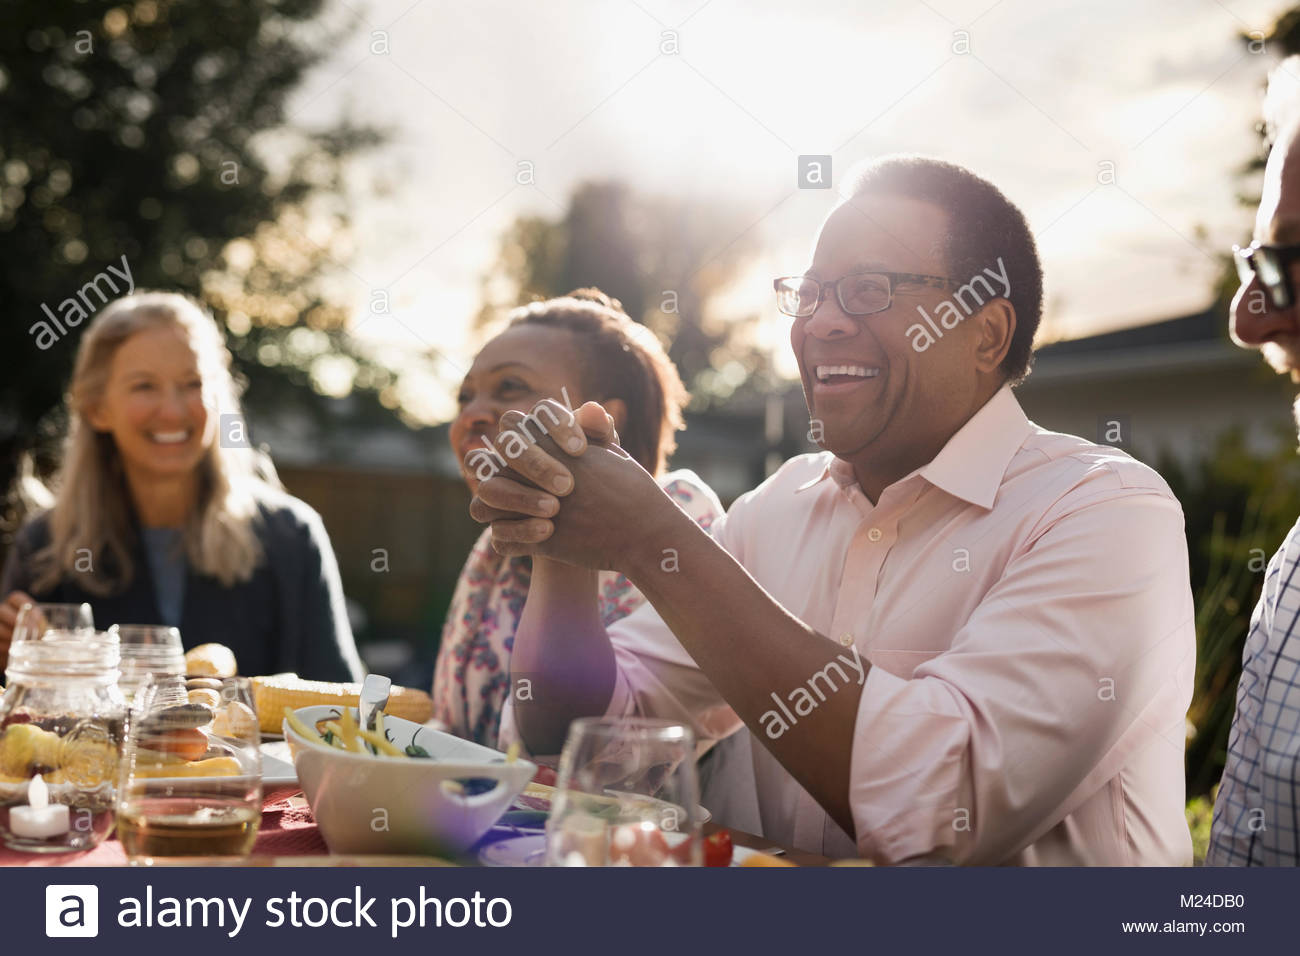 Laughing senior man enjoying garden party lunch with friends at sunny patio table - Stock Image